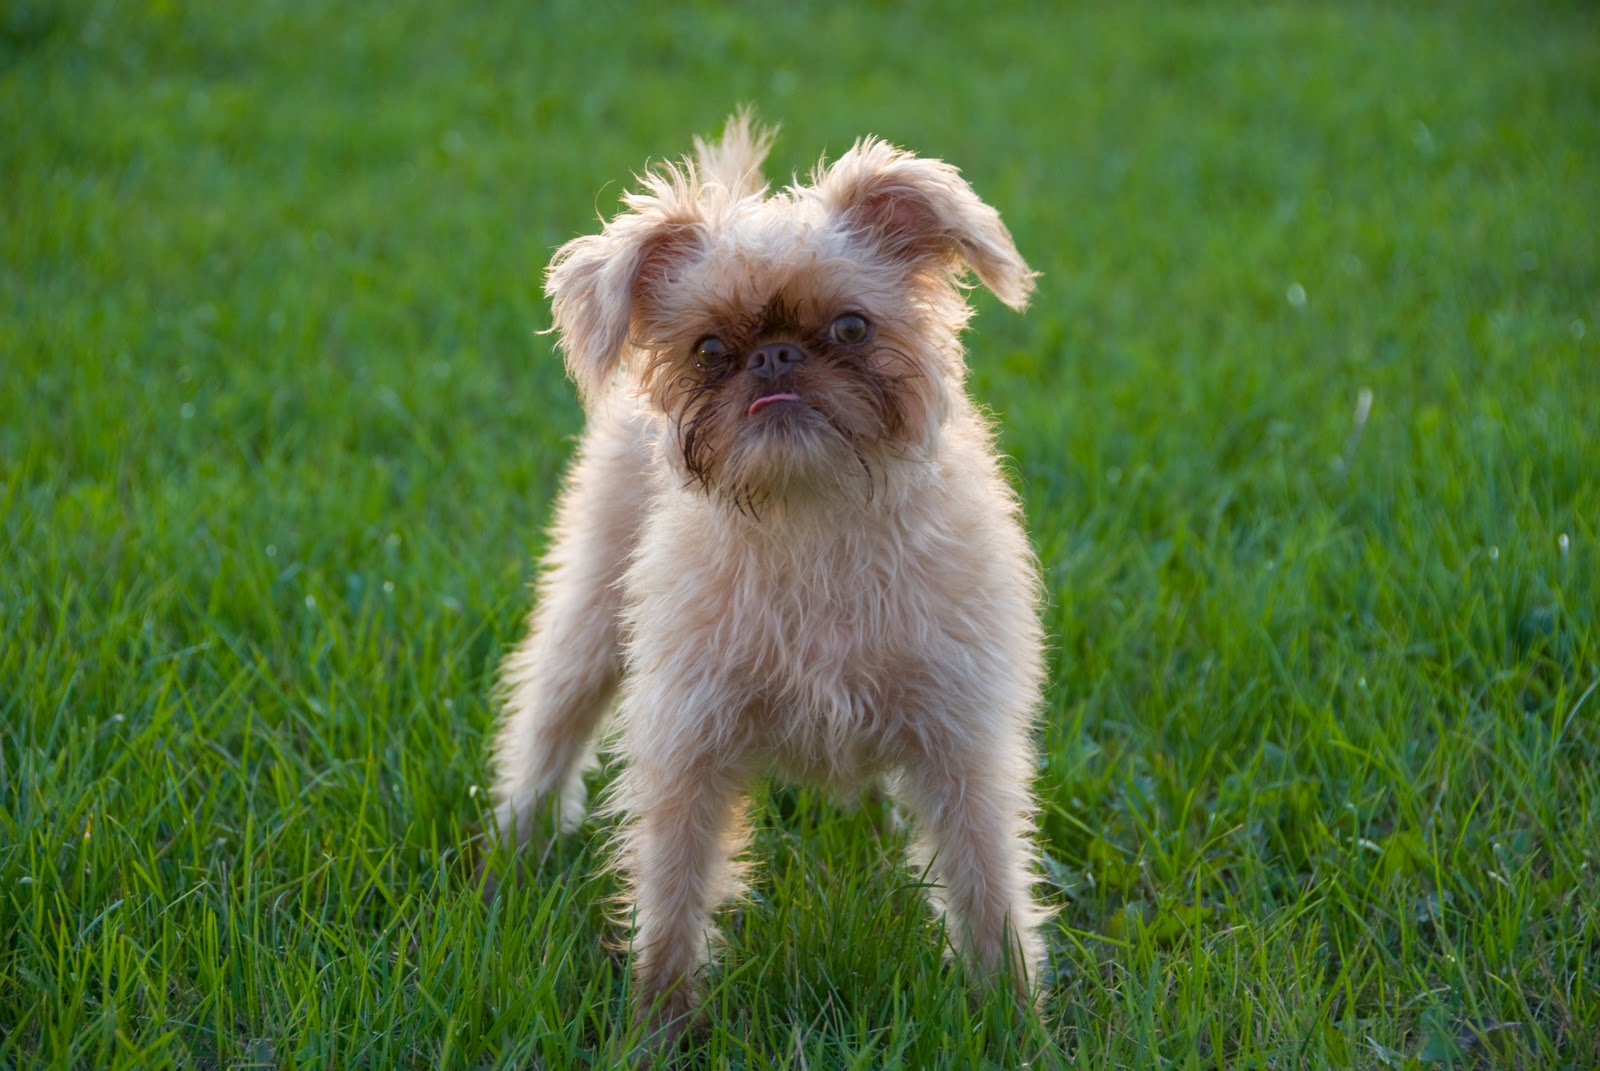 Brussels Griffon breed dog playing outdoor